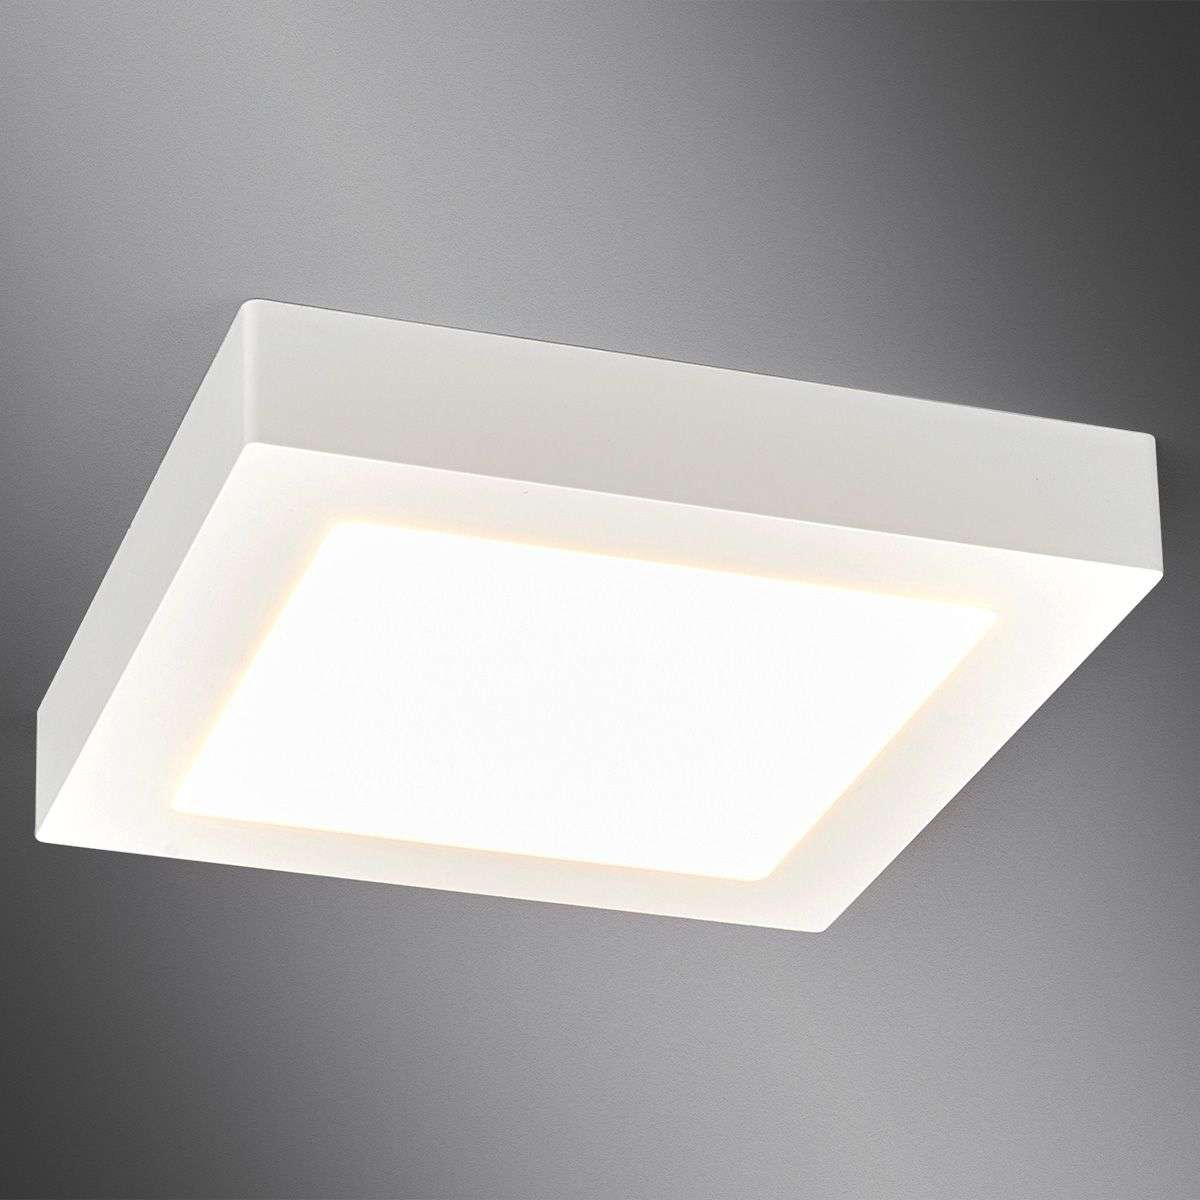 White Square Led Bathroom Ceiling Light Rayan 9978024 311